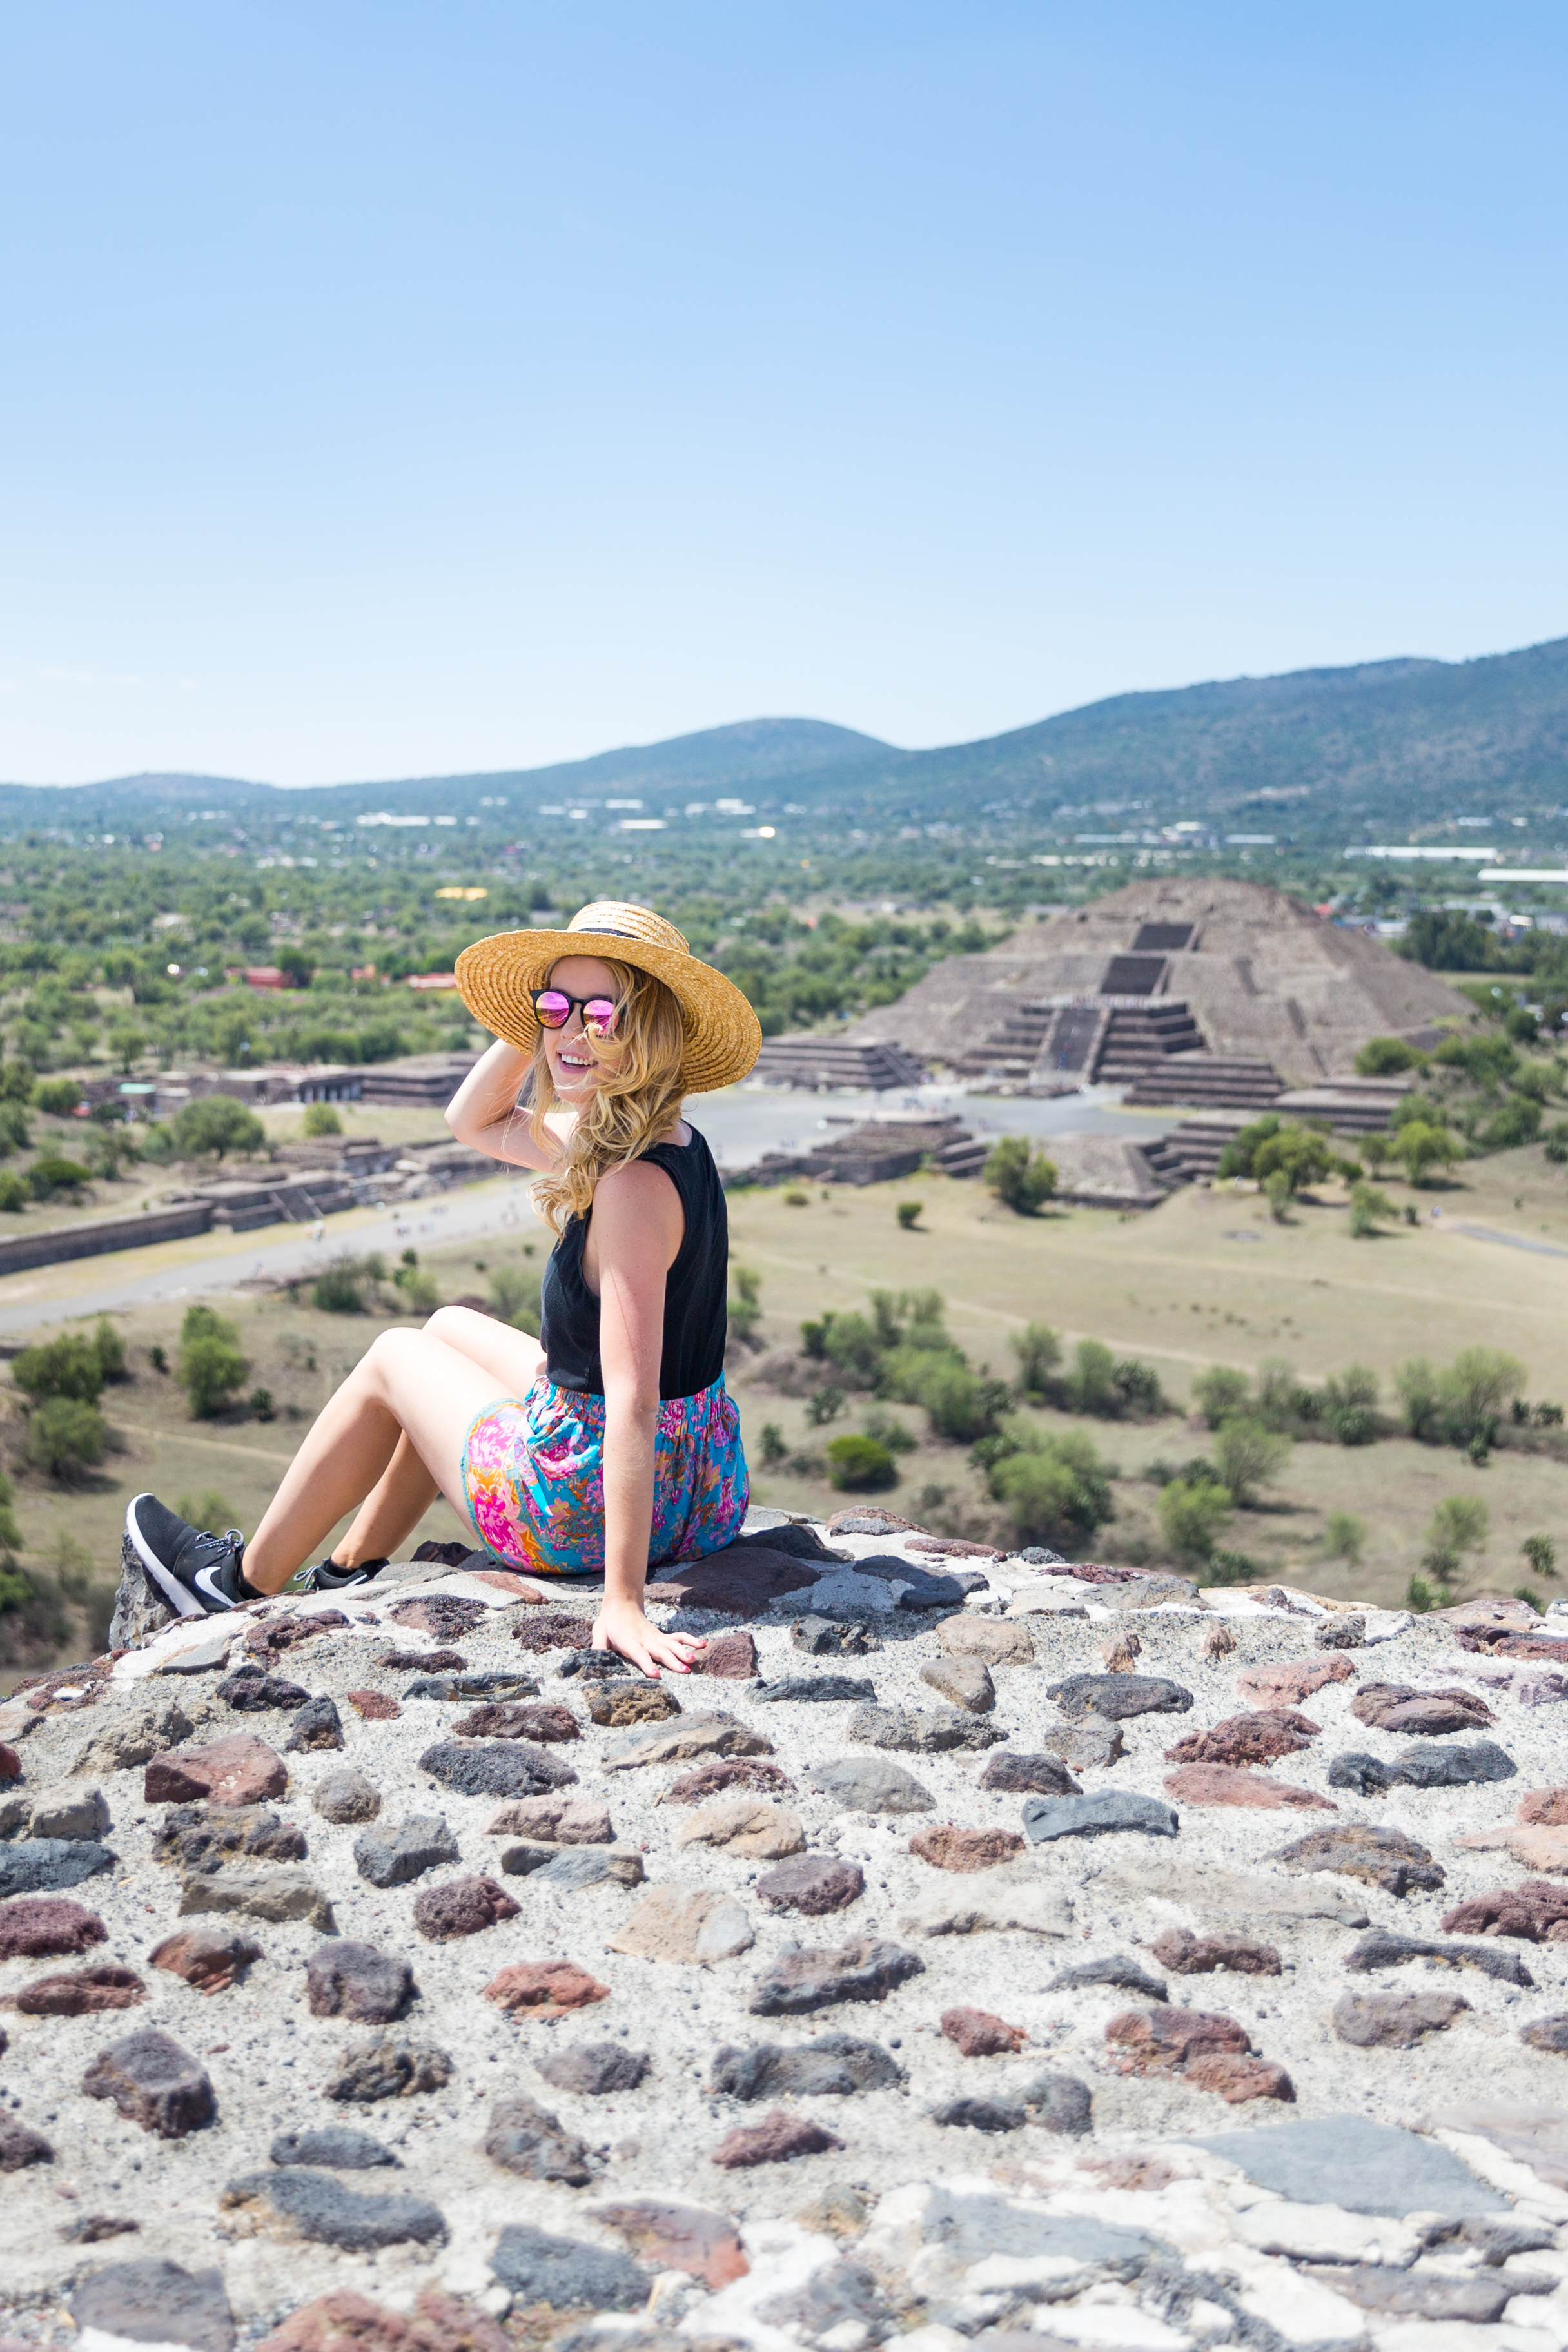 Mexico City Teotihuacan Pyramids Pattern Shorts Casual Summer Outfit-9.jpg